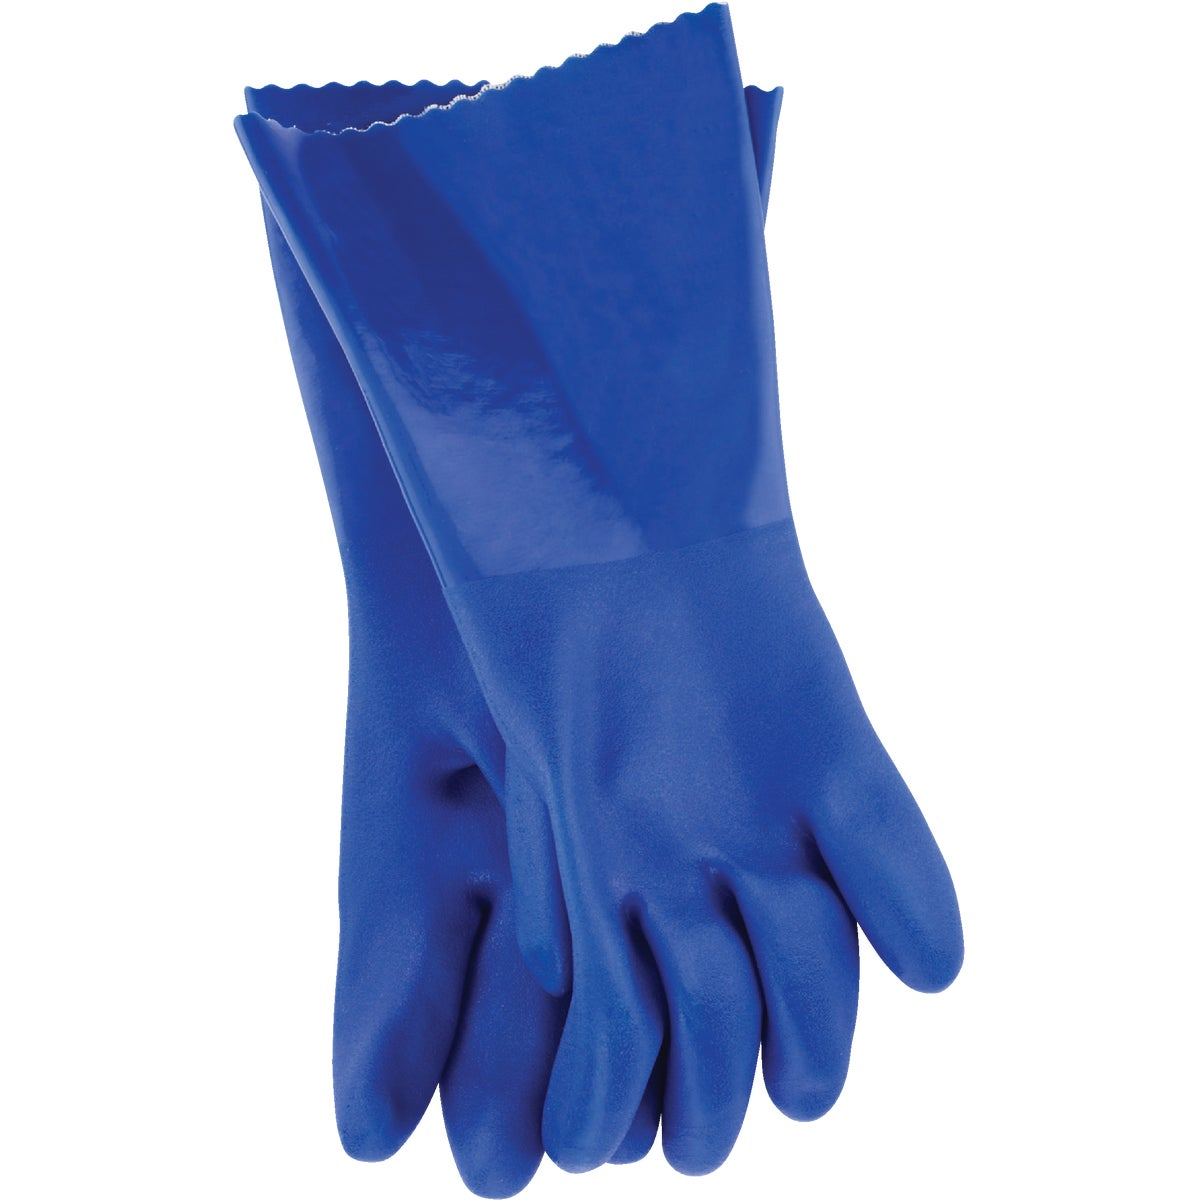 MED PVC CLEANING GLOVE - 12520-06 by Big Time Prod  Un Du